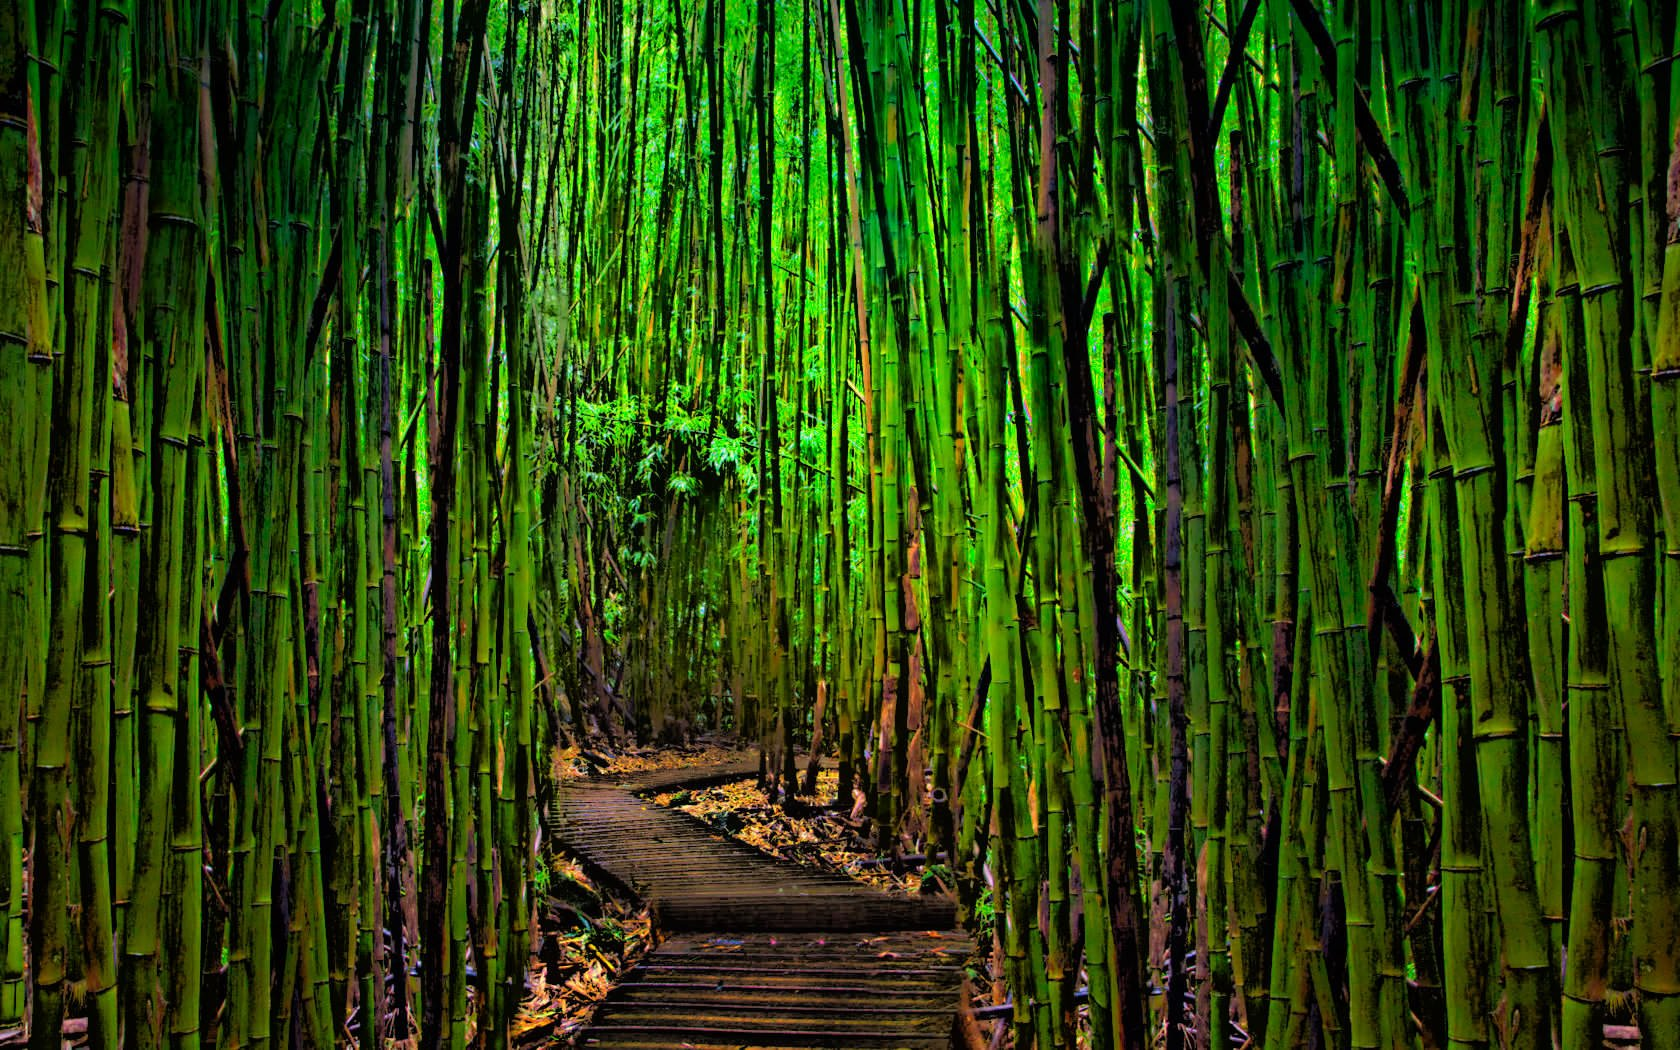 Wallpaper Bamboo